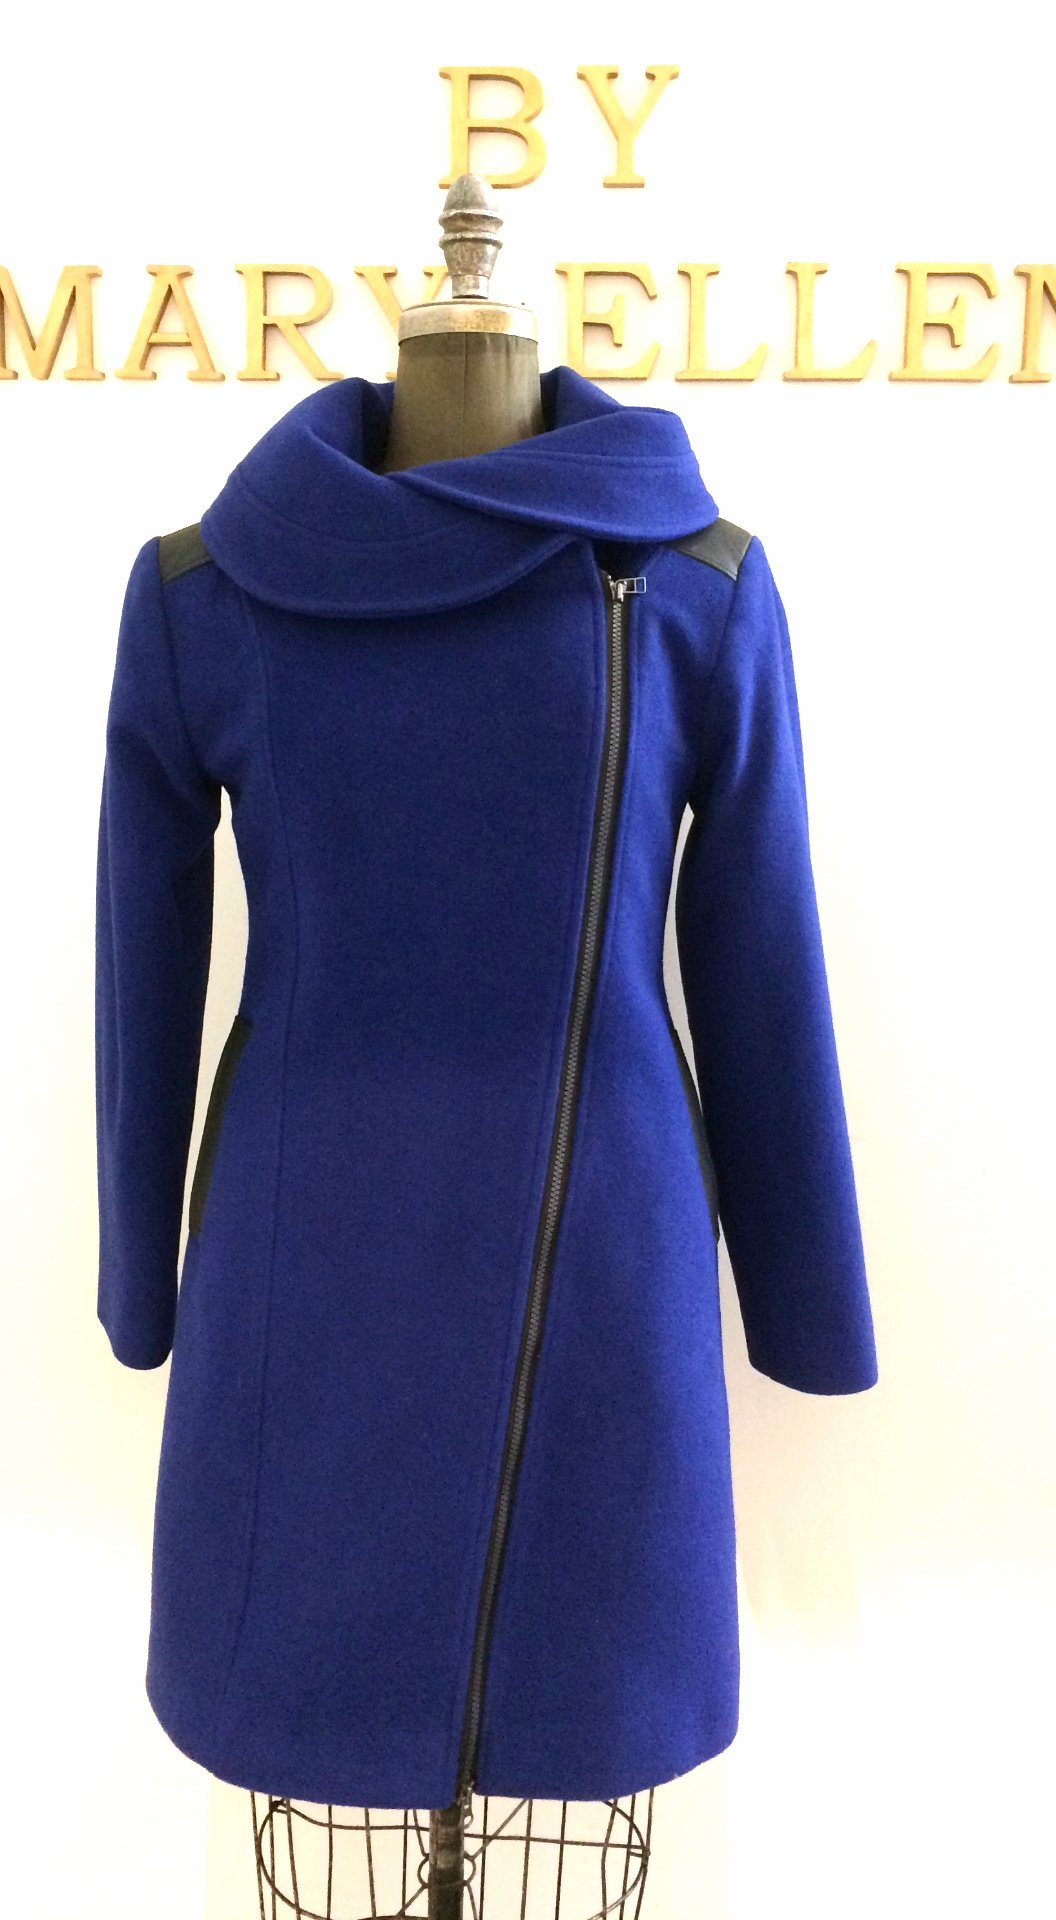 Style #3013 - Royal Blue -  Cashmere/Wool  Features: Modern styling and comfort. This style has an over sized rounded collar, diagonal 2 way zipper and trimmed with soft & supple lambskin leather. Includes extra buttons.  Chamois lined for warmth.  In-Stock Colours: Plum, Black, Black Raised Tweed, Charcoal, Charcoal Patter, Black/White Pattern , Houndstooth or can be custom made in the colour of your choice. ROYAL BLUE SOLD OUT CAN BE CUSTOM ORDERED  Various Fabric: Cashmere or Cashmere Blend, Alpaca, 100% Pure Virgin Wool or can be custom made  in the fabric of your choice.  Size: S,M,L  Price:   $ 579 and up